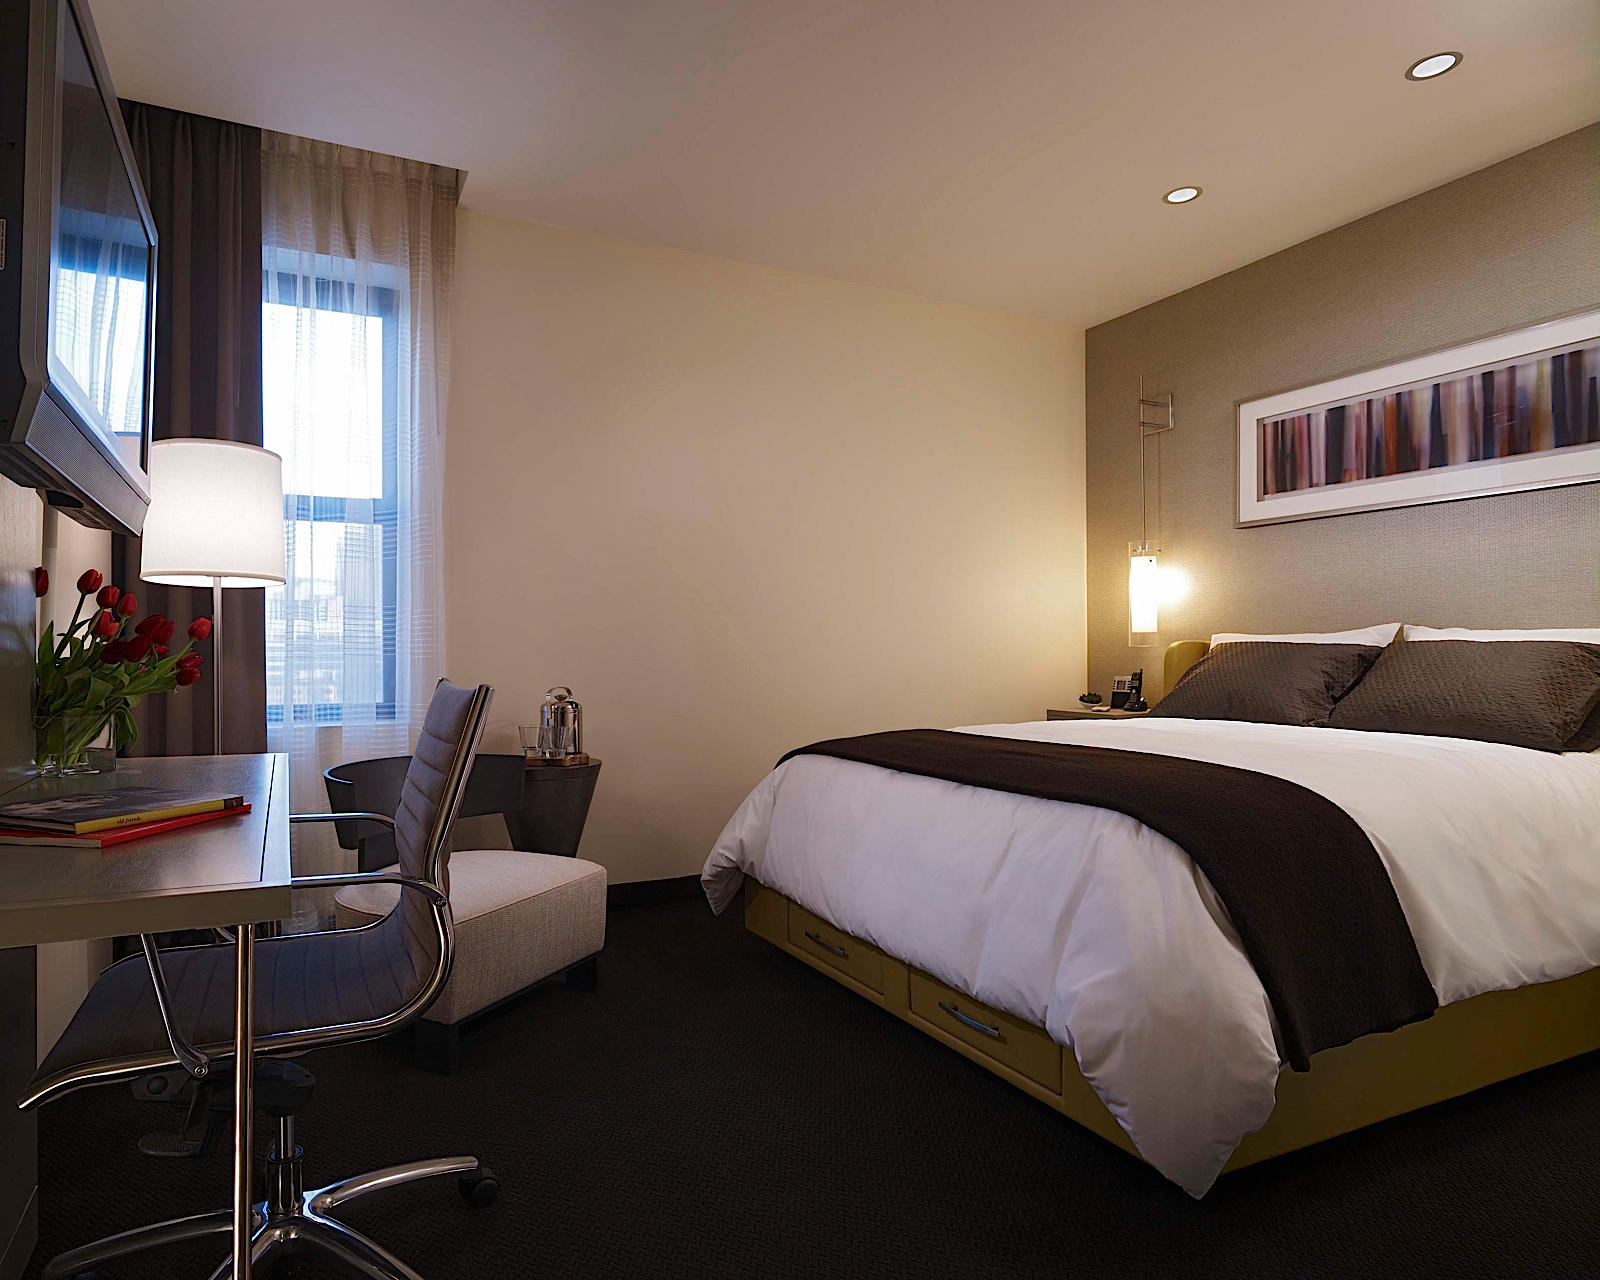 Hotel felix at 111 w huron st chicago il on fave for Hotels 60657